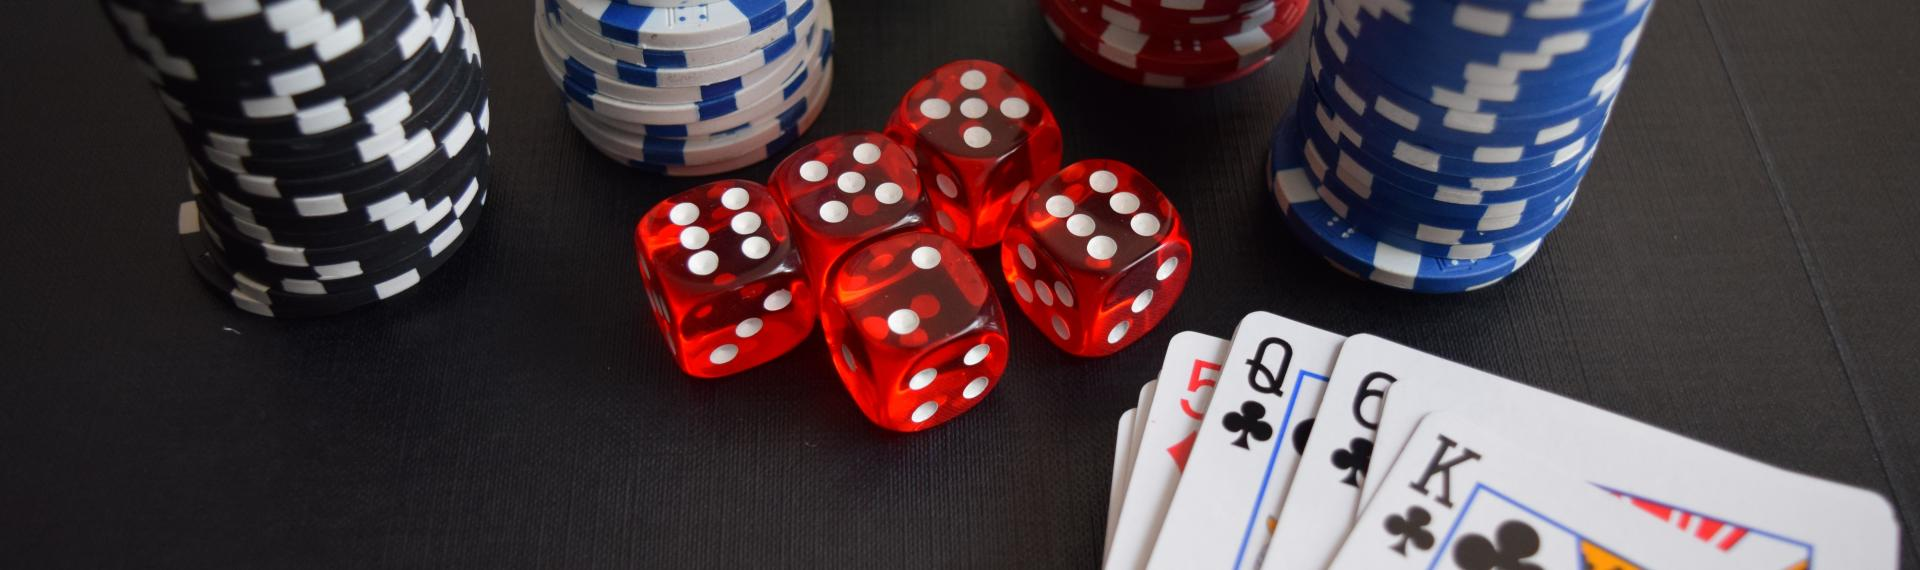 Image of gambling chips, dice and cards.